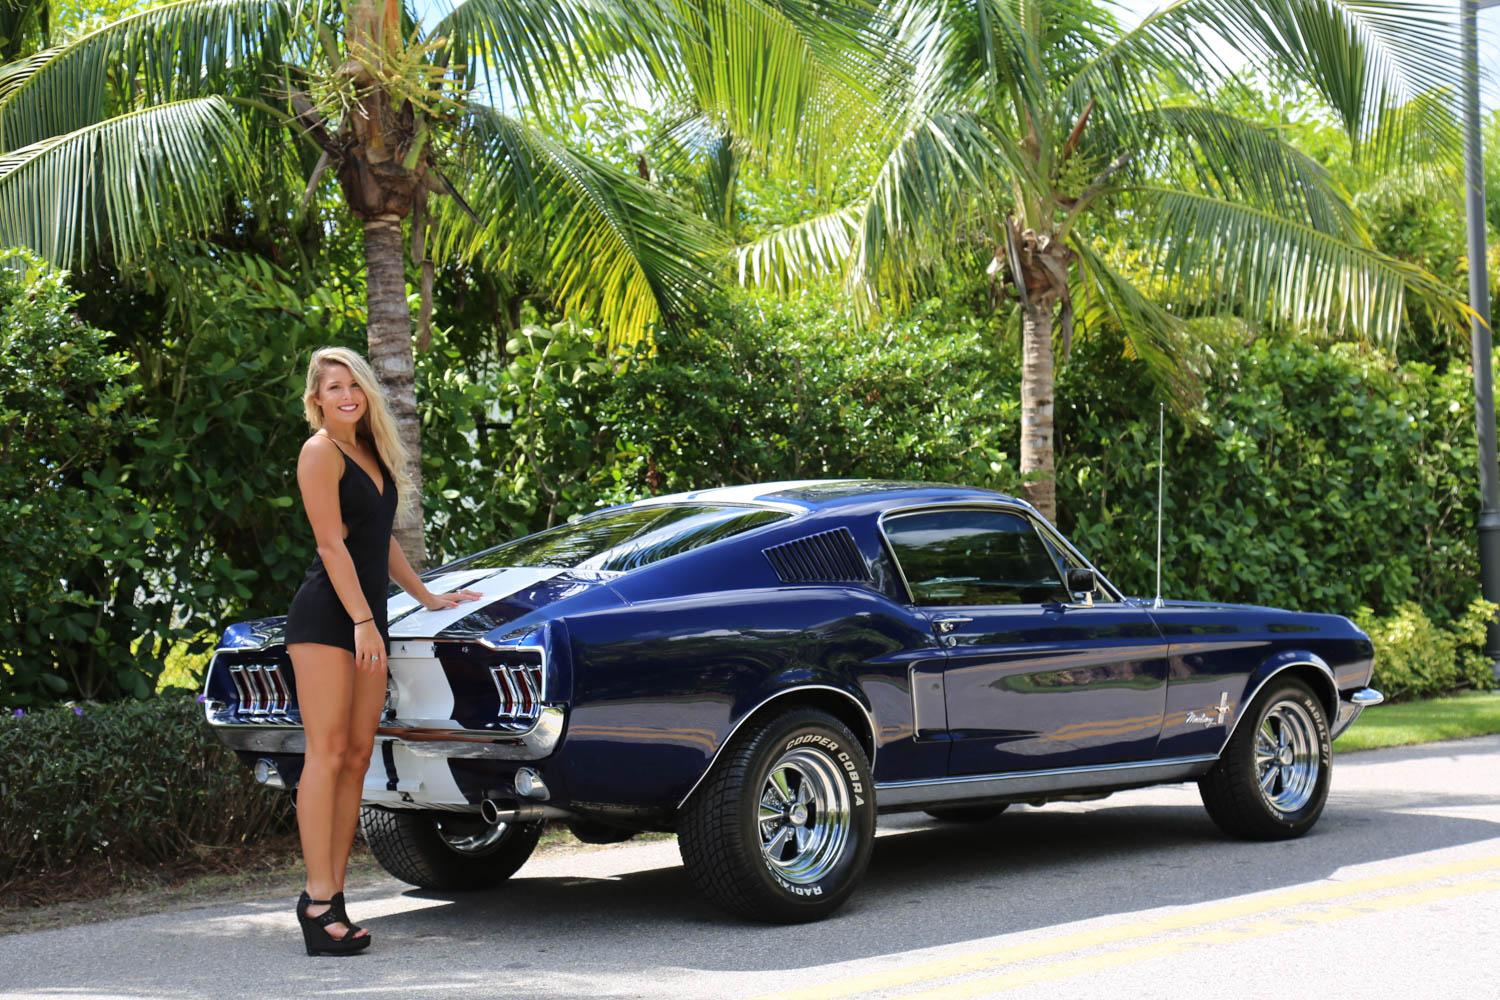 Used 1968 FASTBACK Mustang Mustang for sale Sold at Muscle Cars for Sale Inc. in Fort Myers FL 33912 8